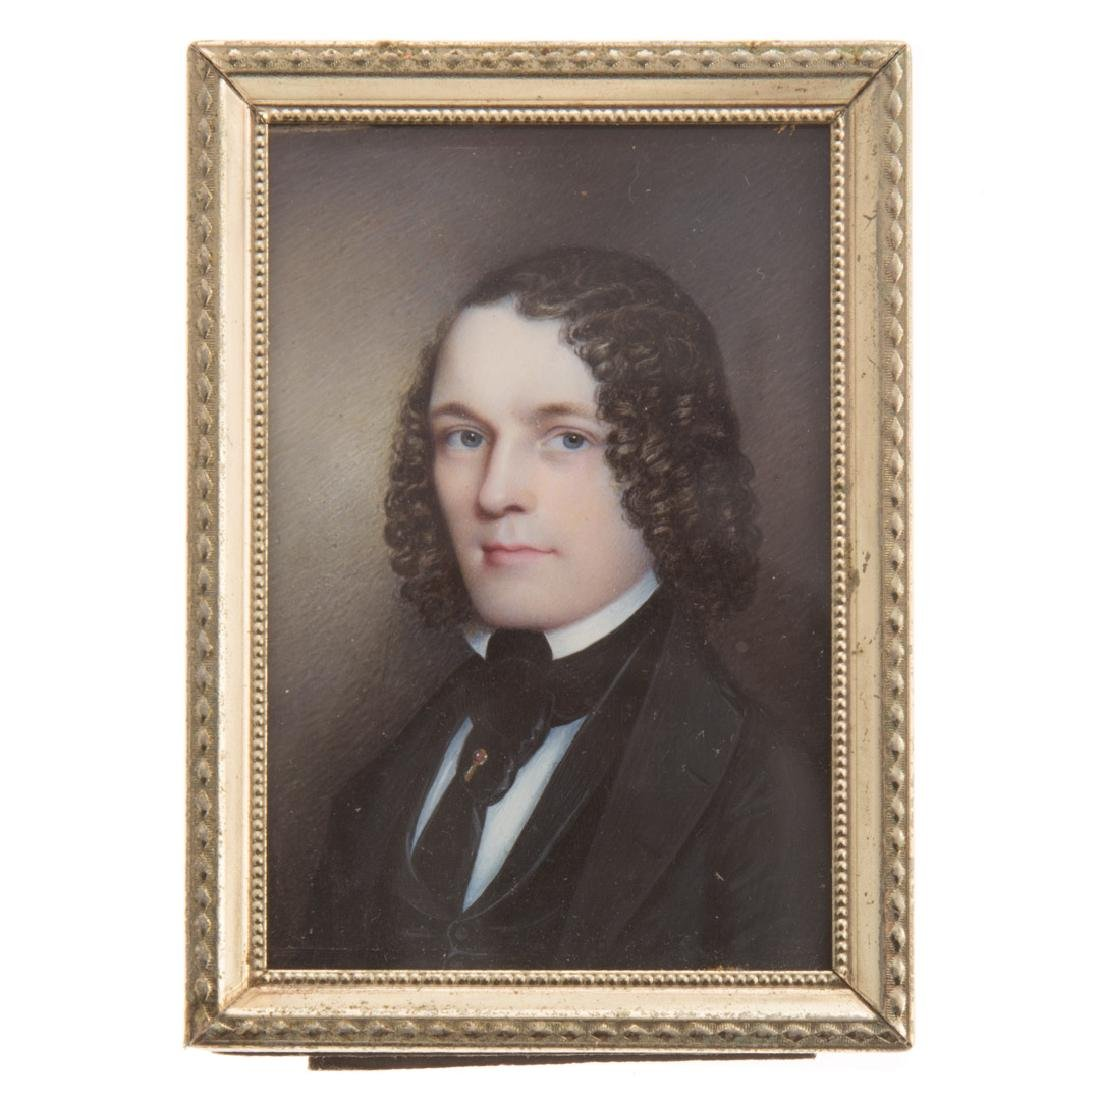 American School 19th century portrait miniature